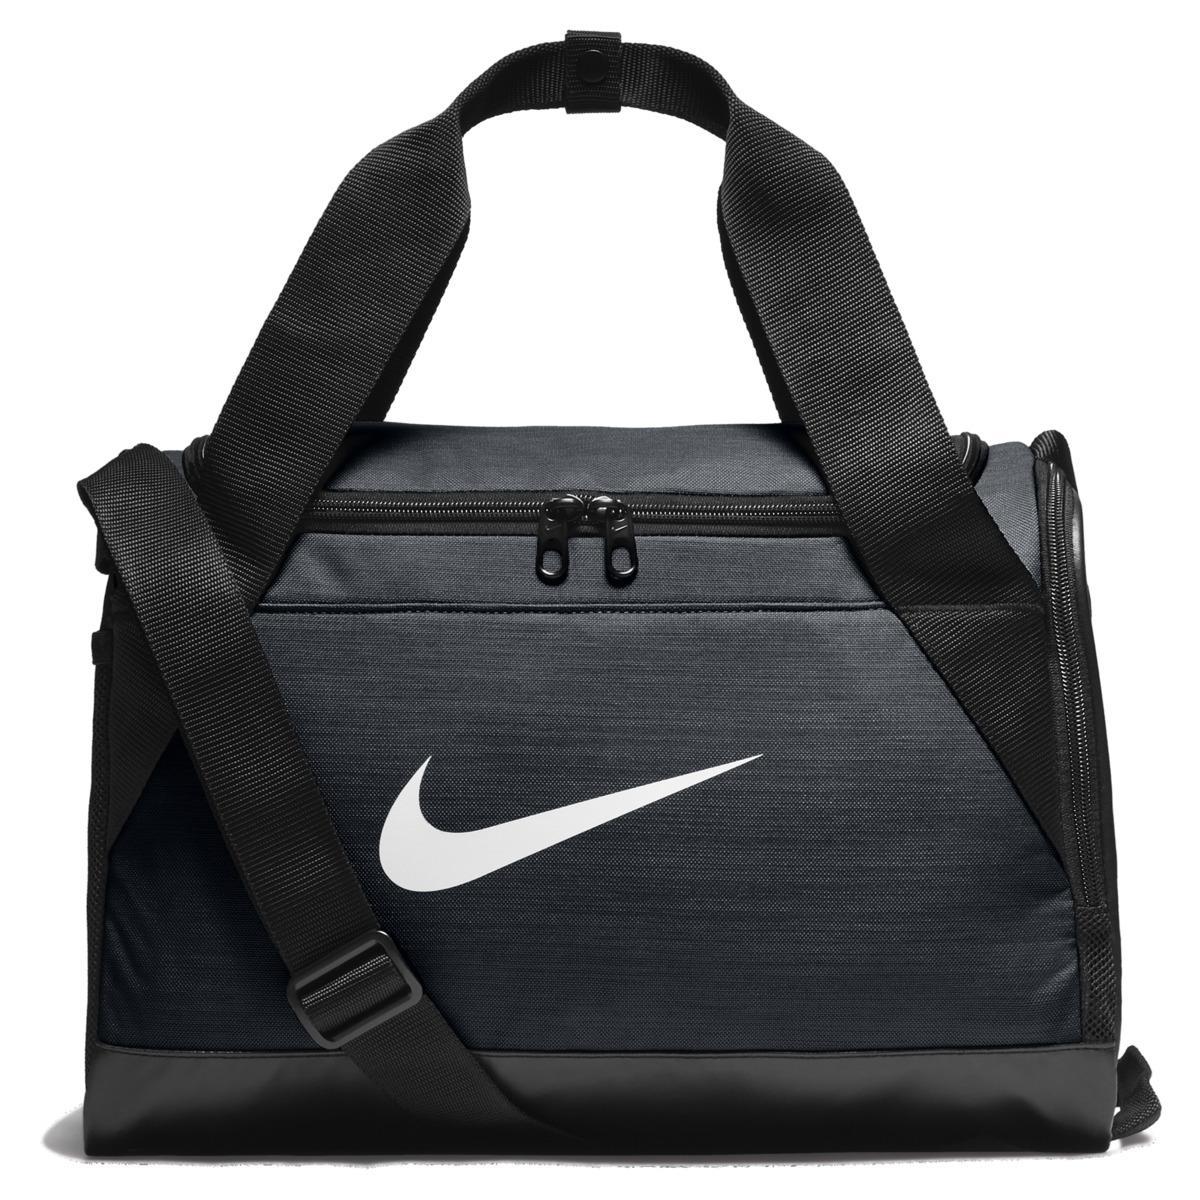 bed8d5a41ee5 Lyst - Nike Brasilia Xs Sports Bag in Black for Men